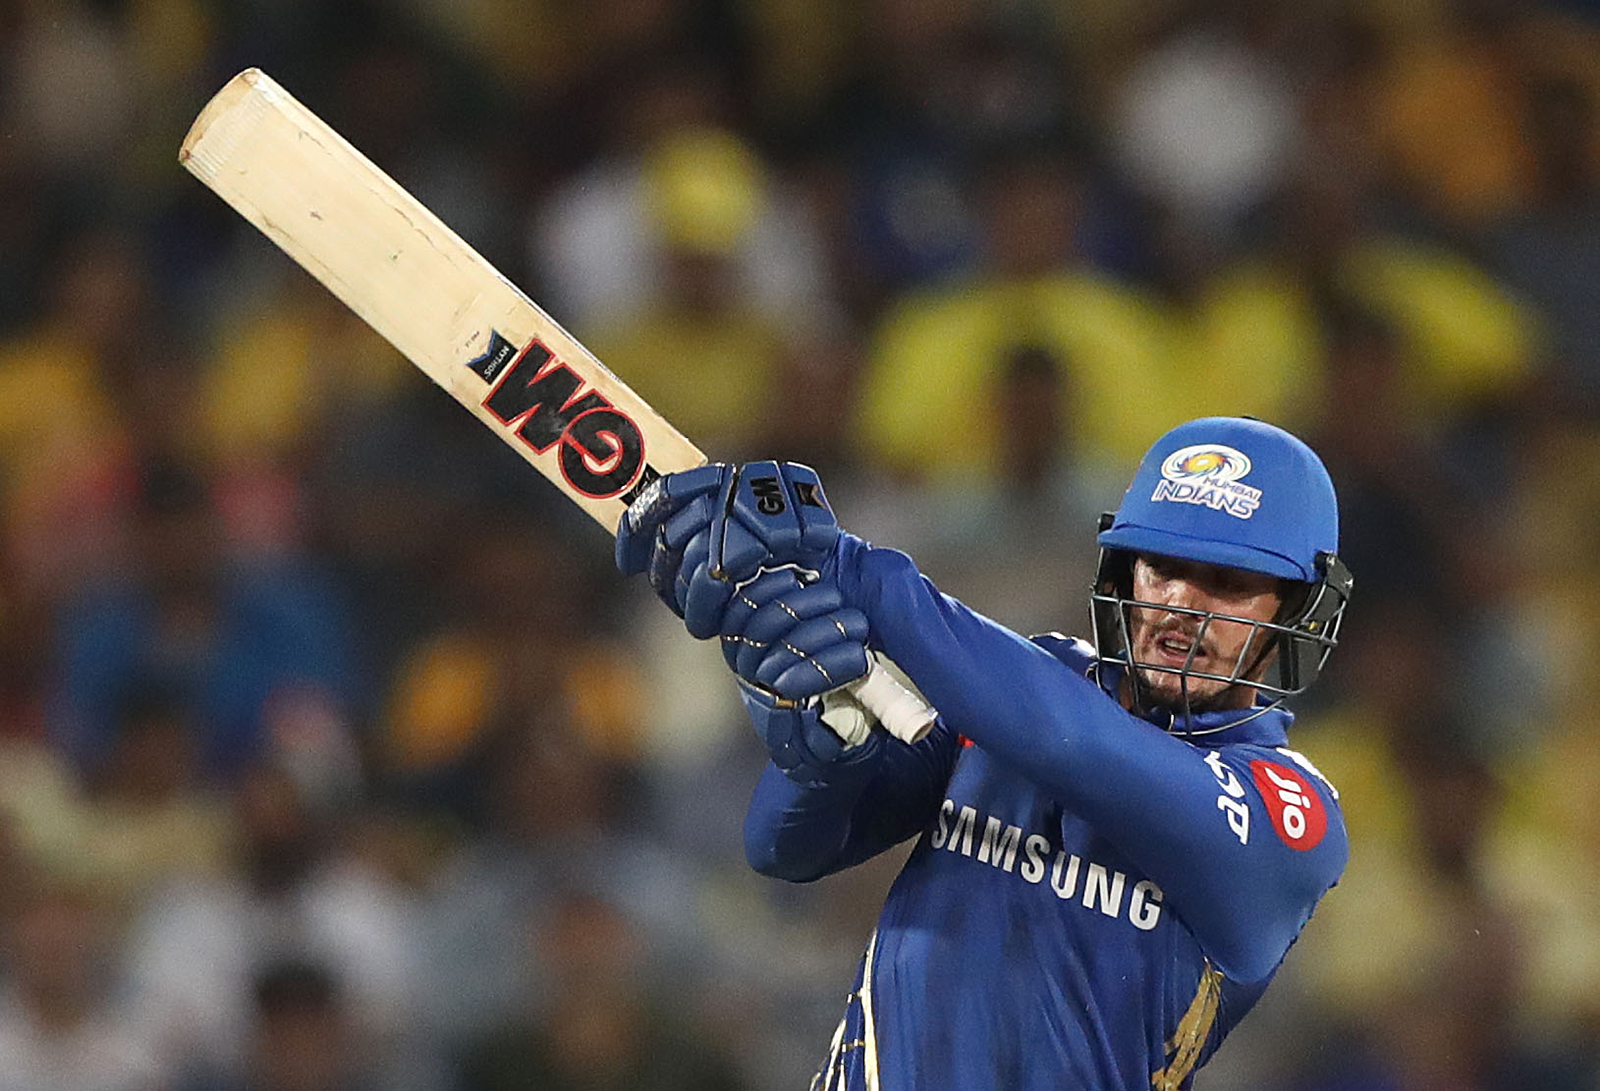 Quinton de Kock of the Mumbai Indians bats during the Indian Premier League Final match between the the Mumbai Indians and Chennai Super Kings at Rajiv Gandhi International Cricket Stadium in Hyderabad, India, on May 12, 2019.